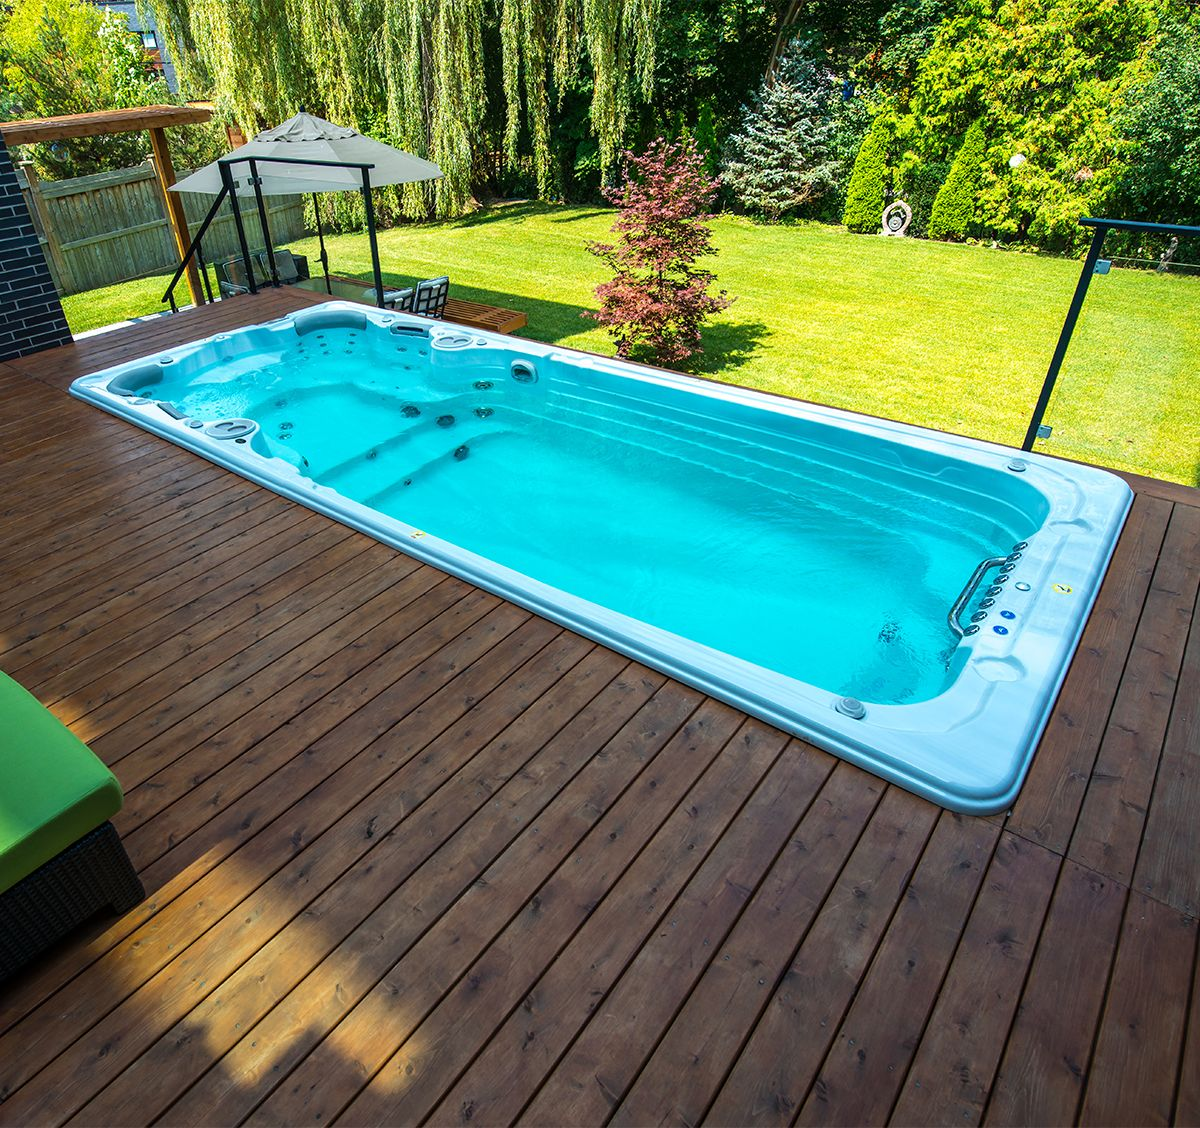 Endless Pool Small Space Endless Lap Resistance And You Can